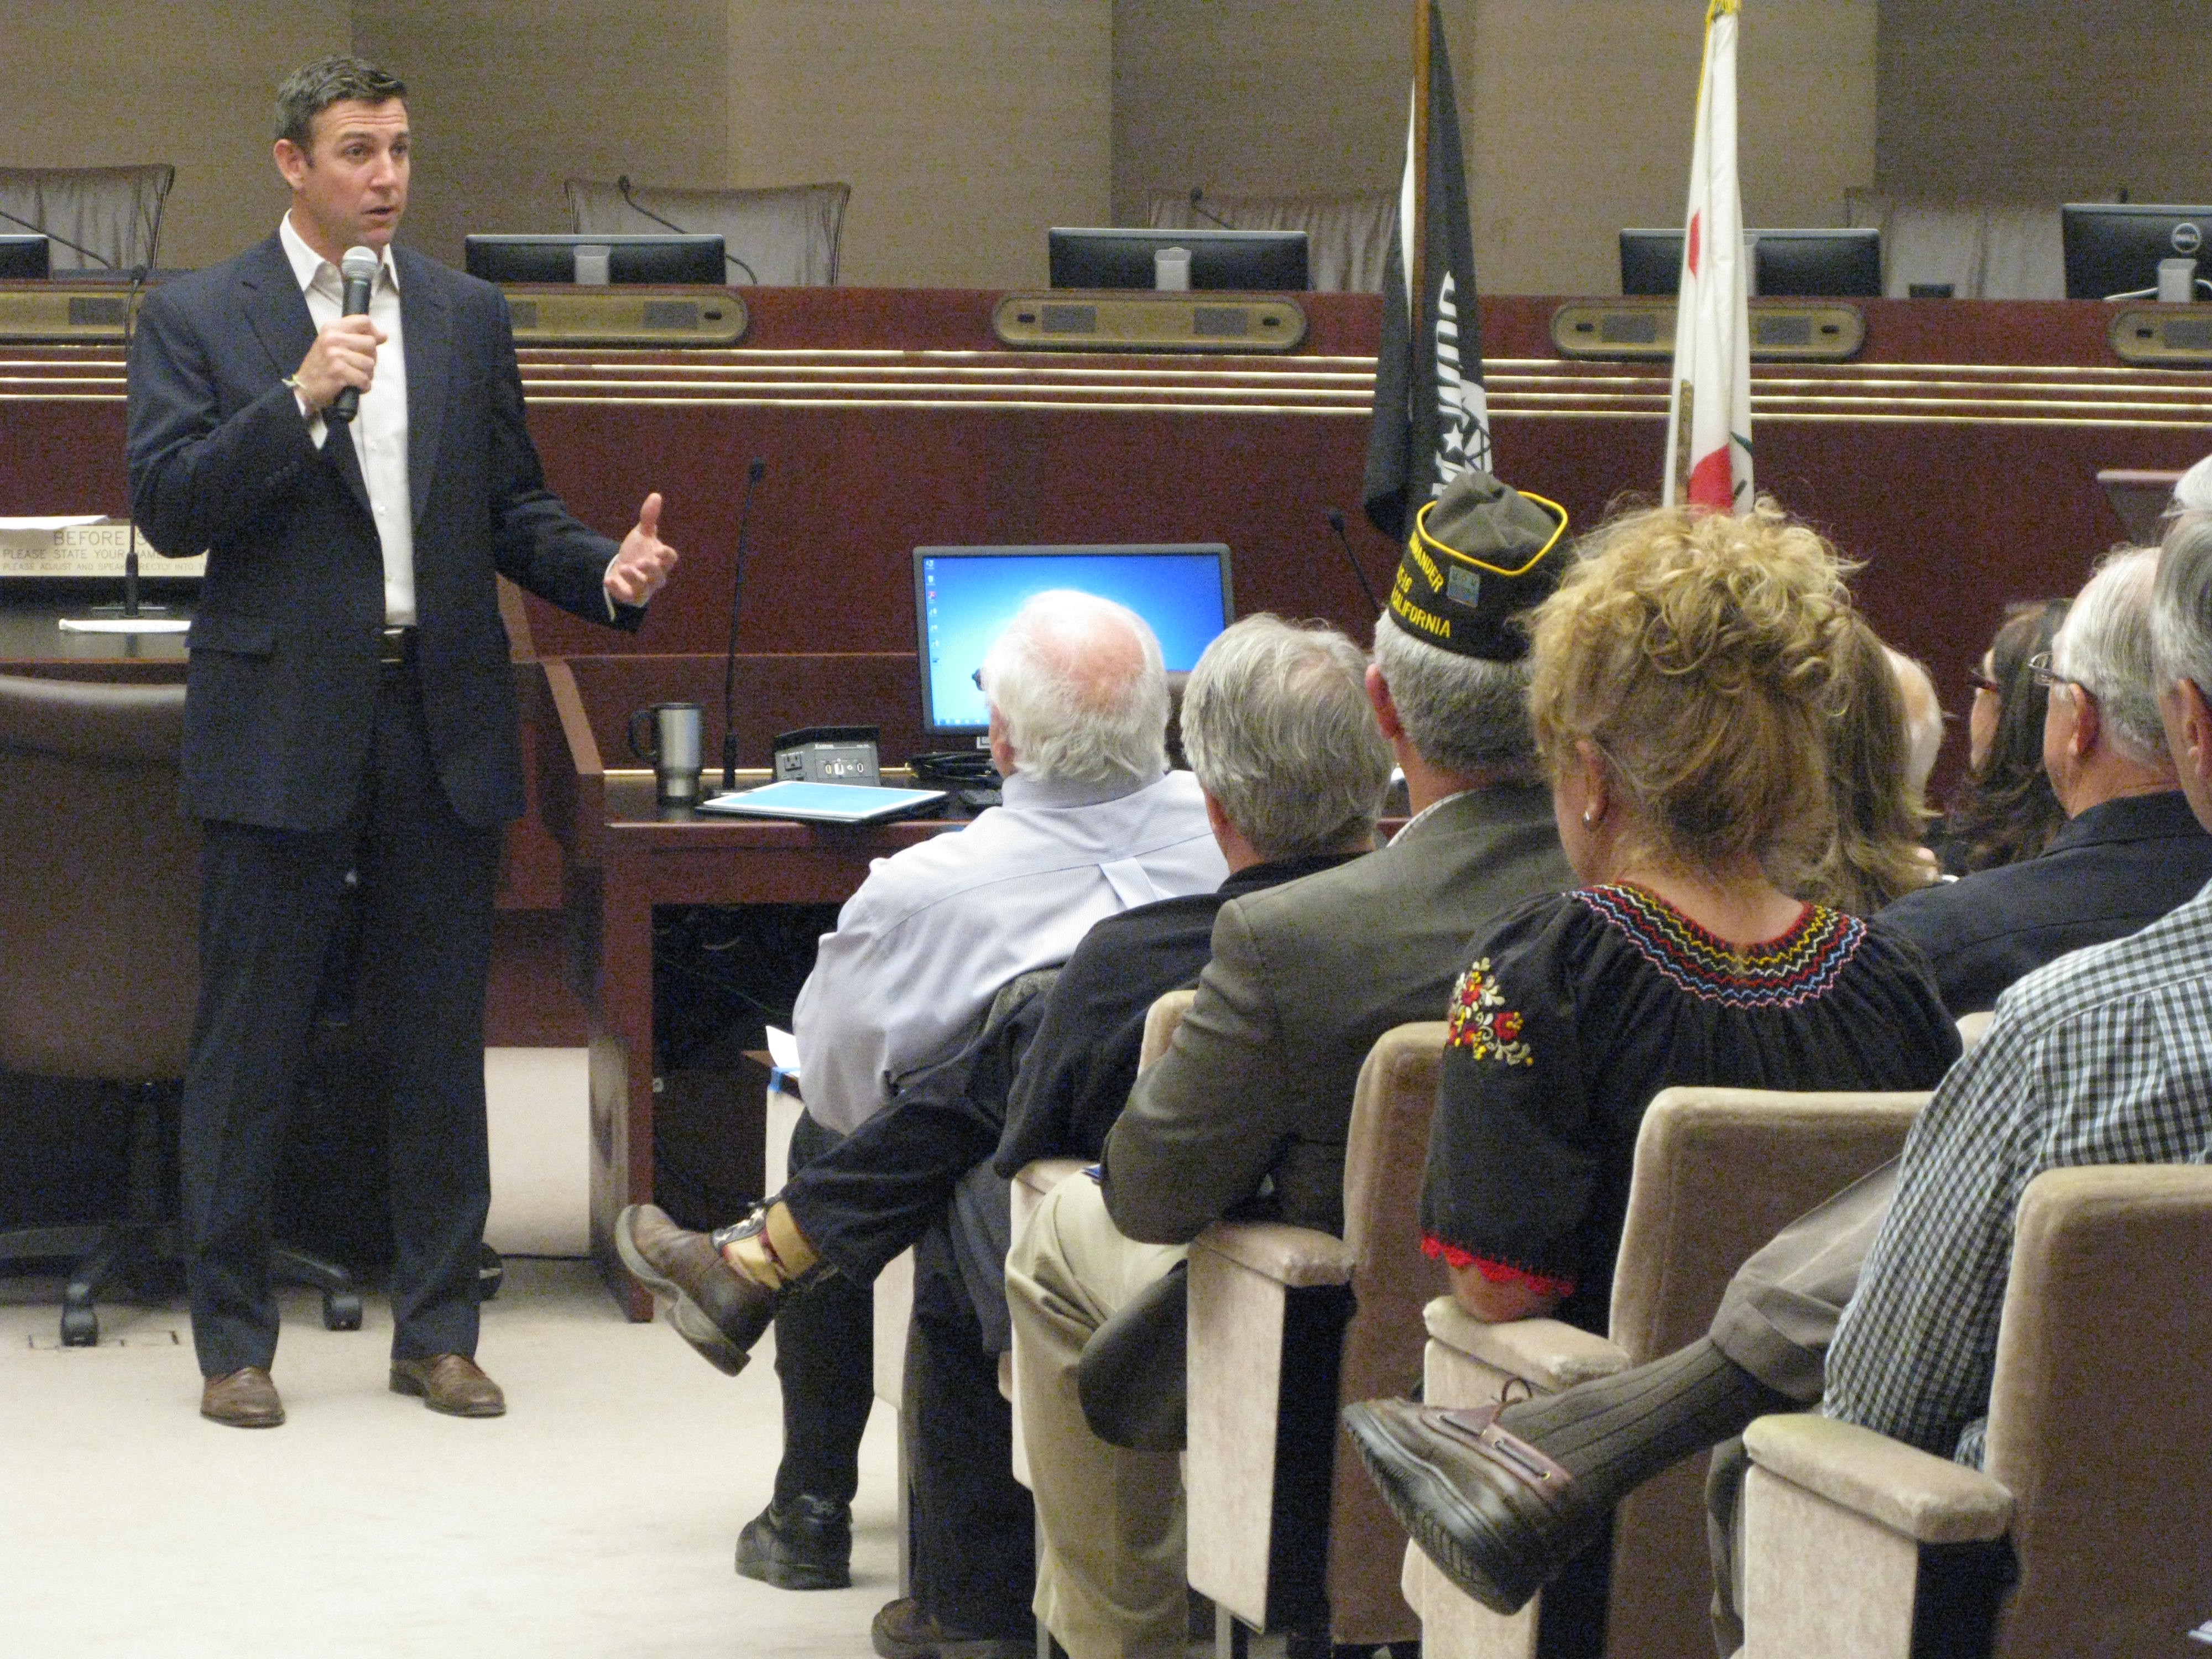 50th District Congressman Duncan Hunter spoke on a wide rage of subjects at a Town Hall-style meeting in the Escondido City Council Chambers Monday night.